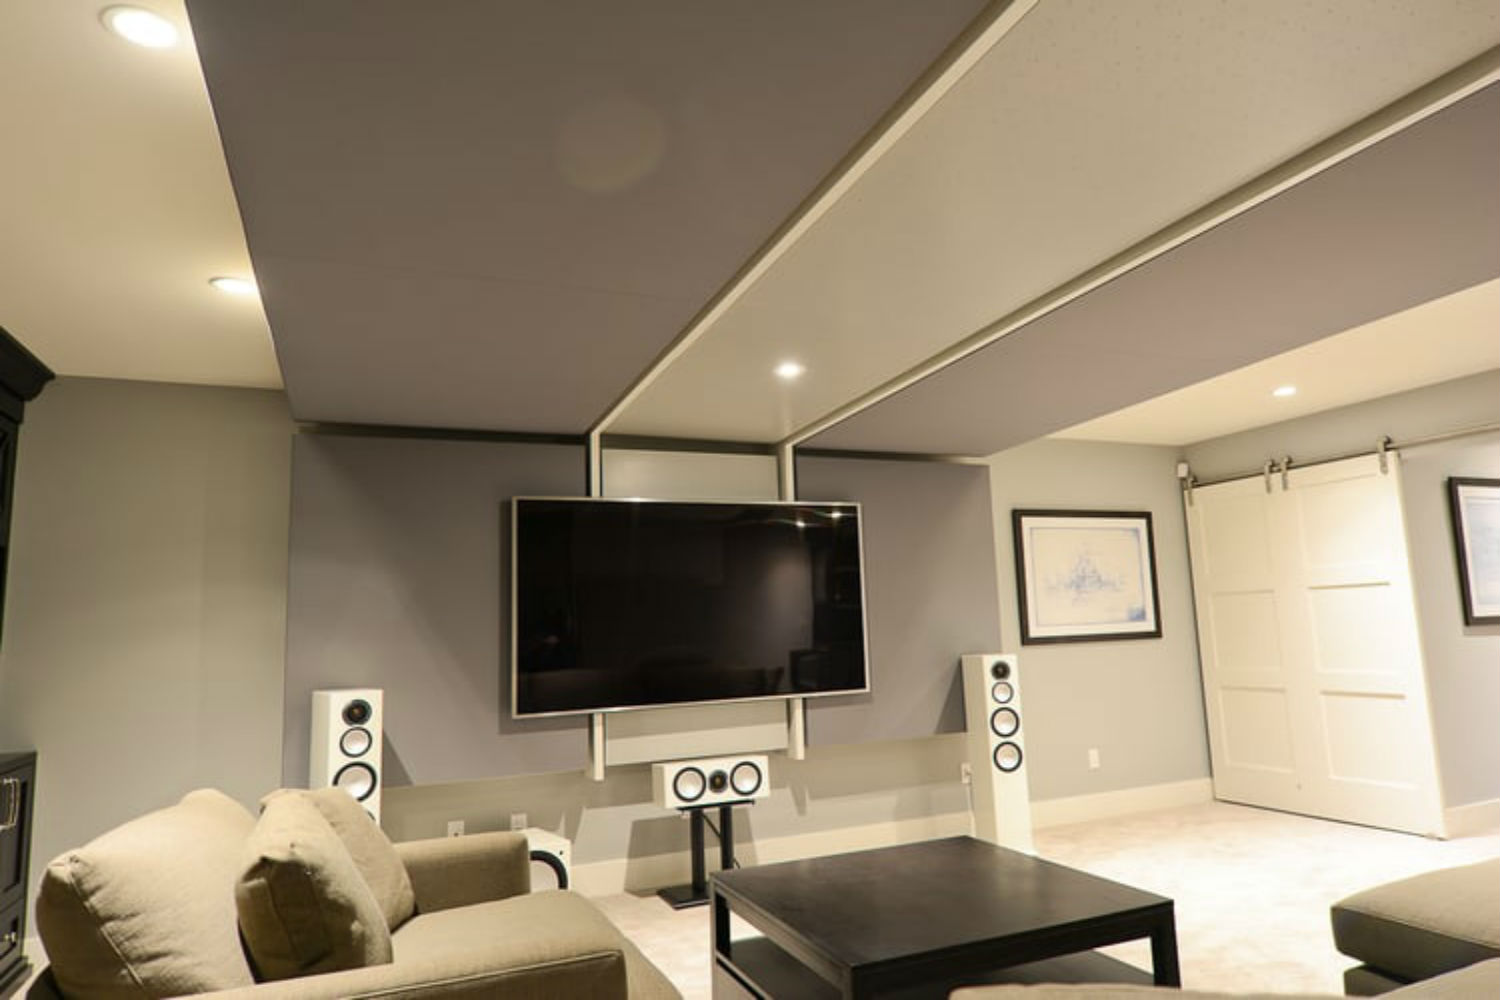 View Larger Image Graeme Judd Home Theater Residential Acoustics Isolation  Design Internal Room Acoustics ...